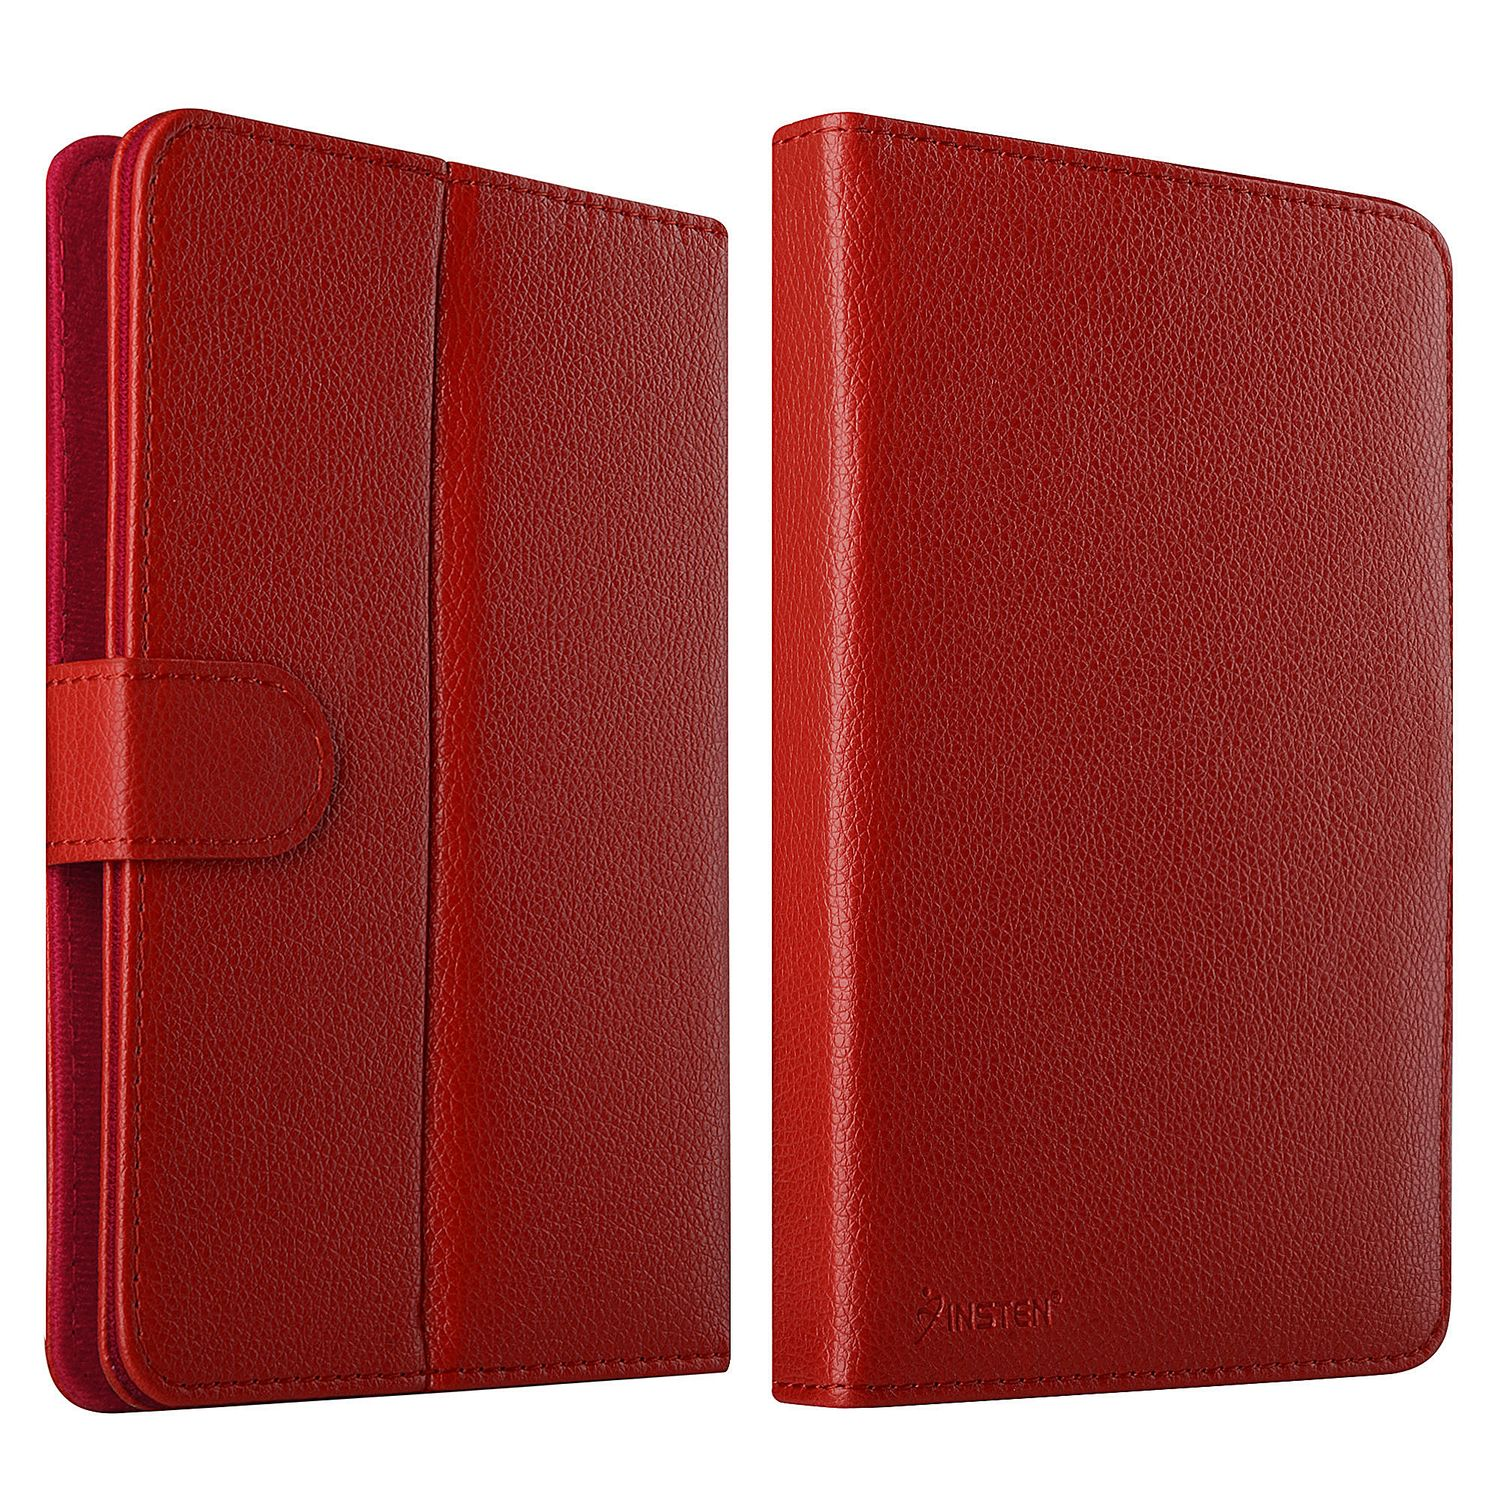 "Insten Leather Universal Stand Folio Case for 7"" Tablets Galaxy Tab 4 3 2 / RCA 7 Voyager II / Nextbook Ares 7 / FileMate Clear 7 / Visual Land Prestige Pro 7DS 7D / Ematic 7 / iPad Mini - Red"